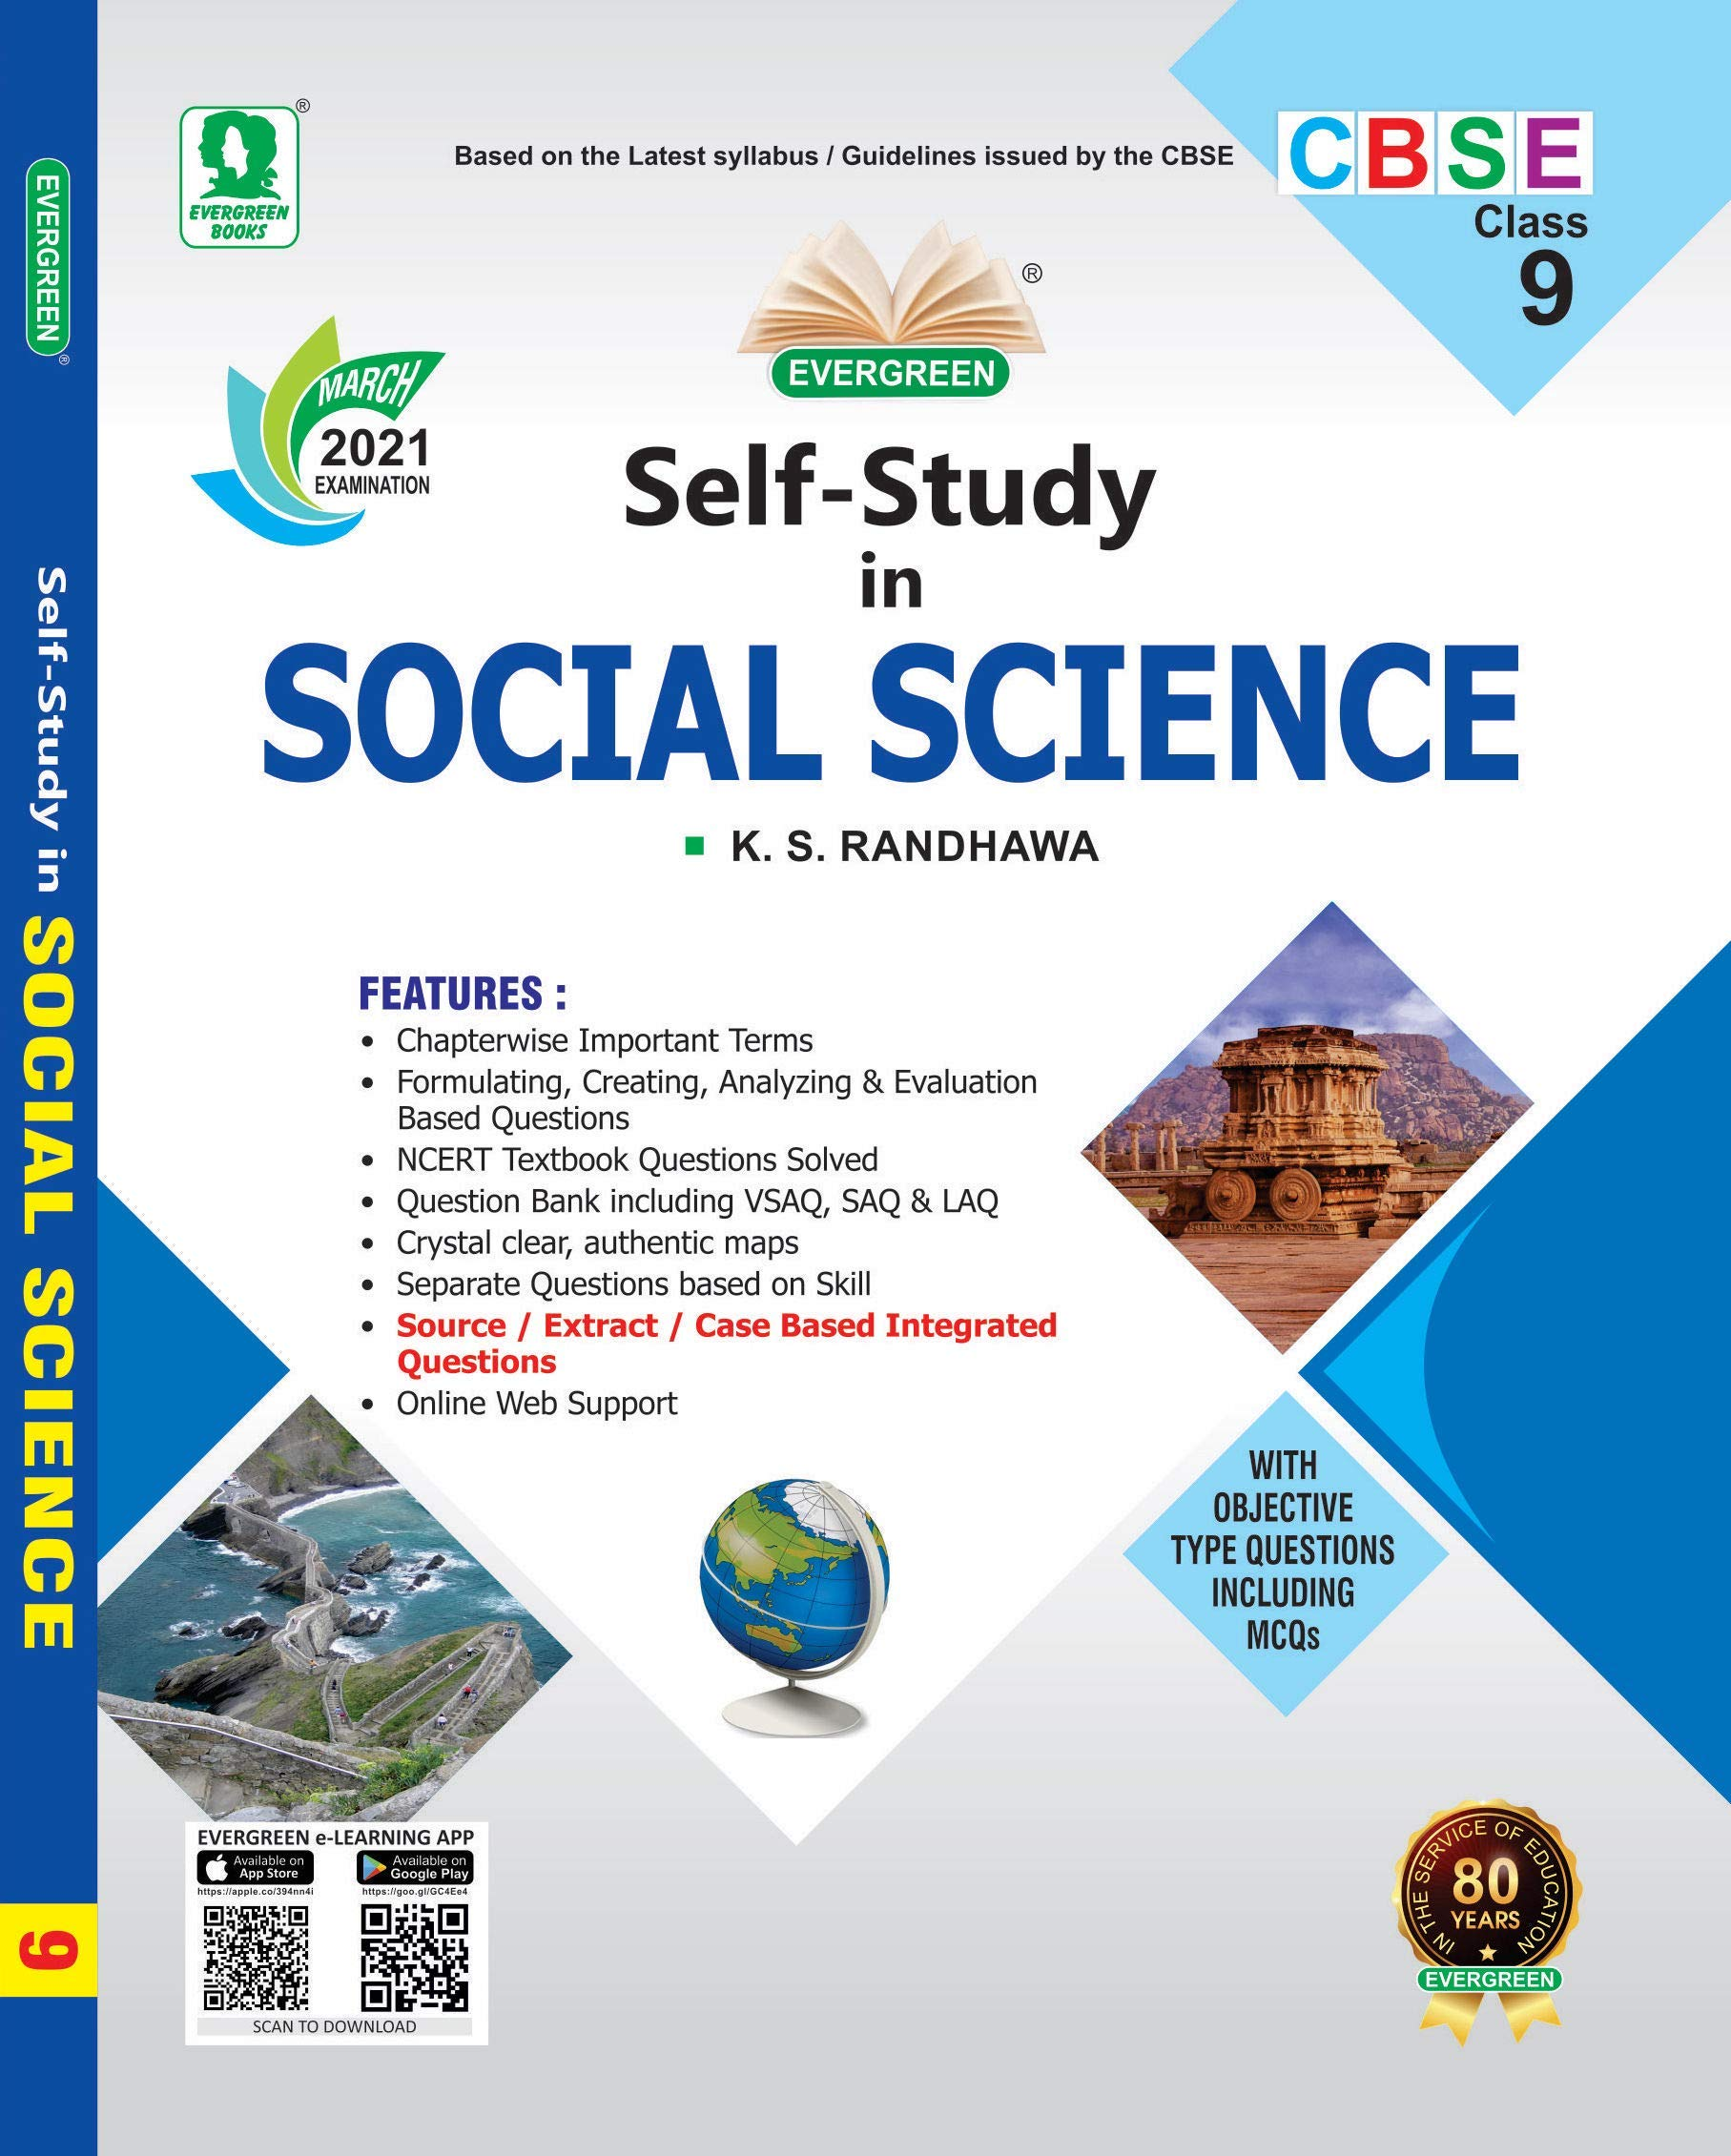 Evergreen CBSE Self Study In Social Science: For March 2022 Examinations(CLASS 9) Paperback – 1 January 2020